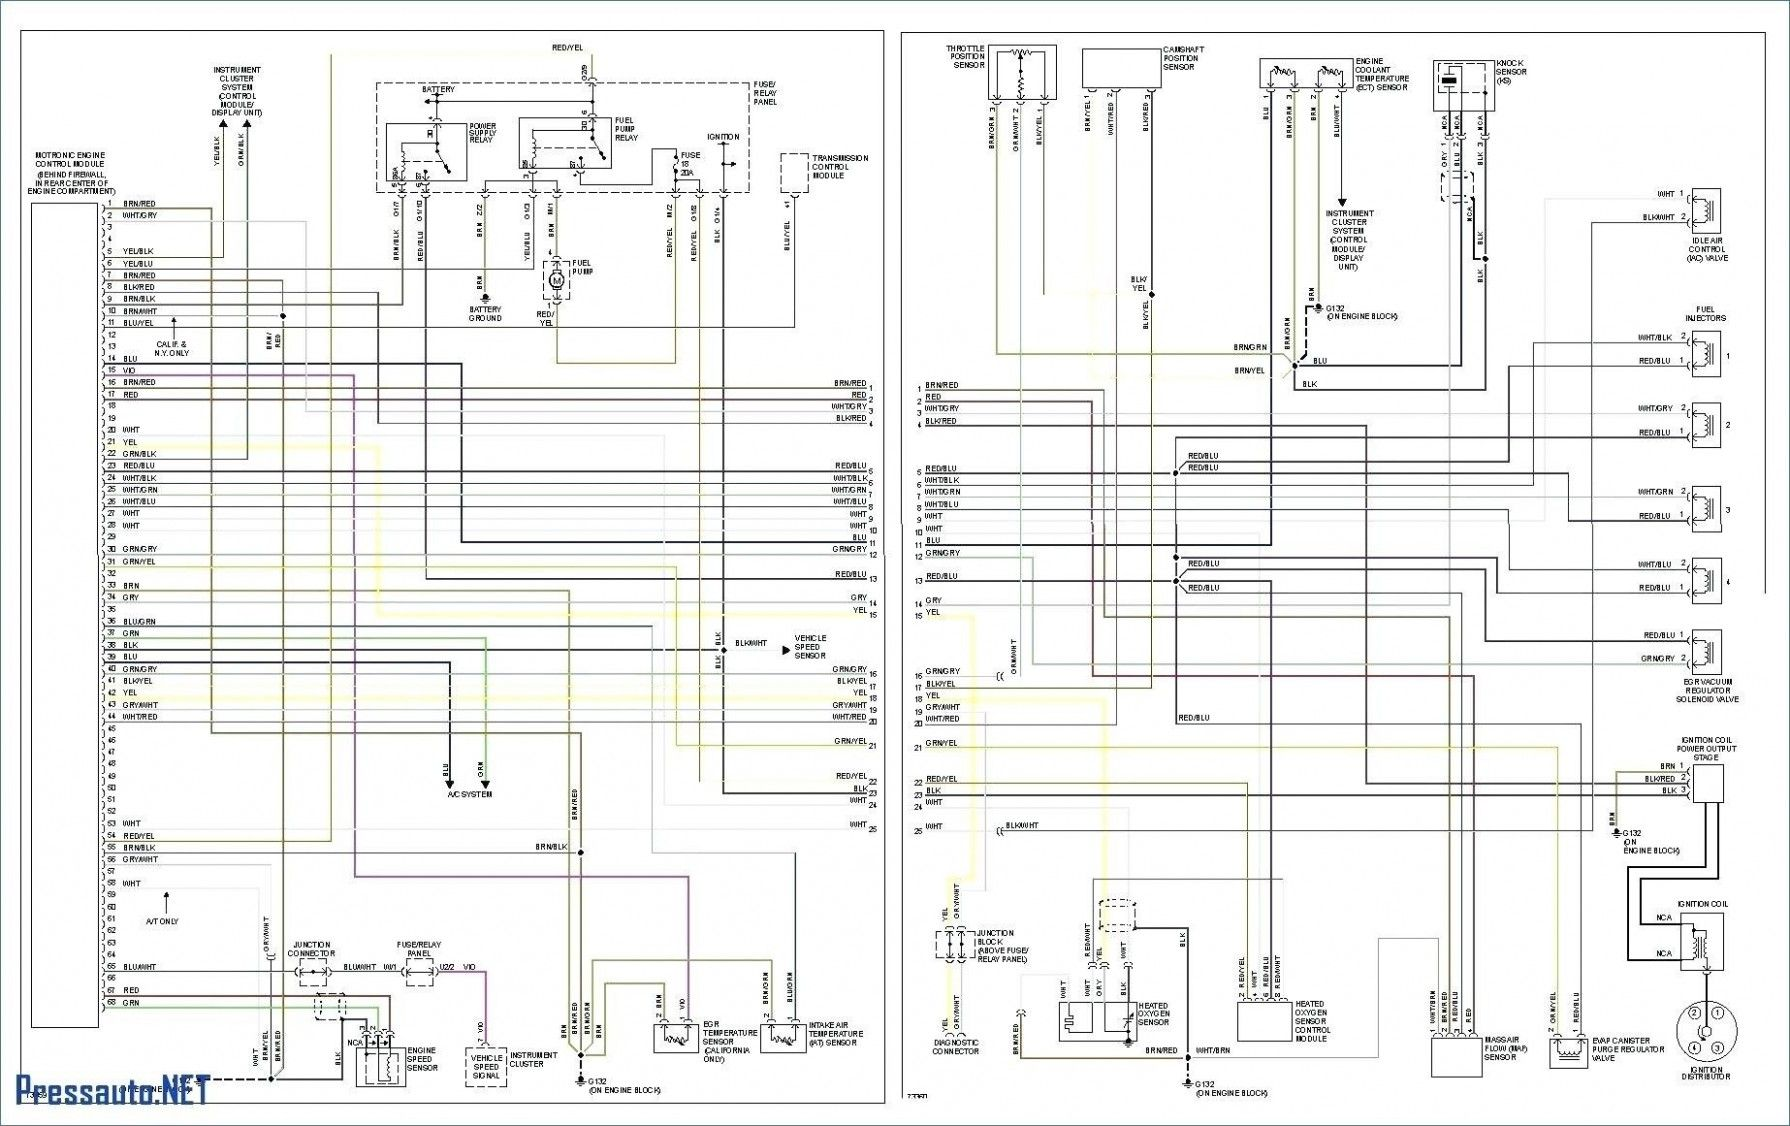 Vw Up Engine Diagram Pdf In 2020 Vr6 Engine Vw Up Electrical Diagram